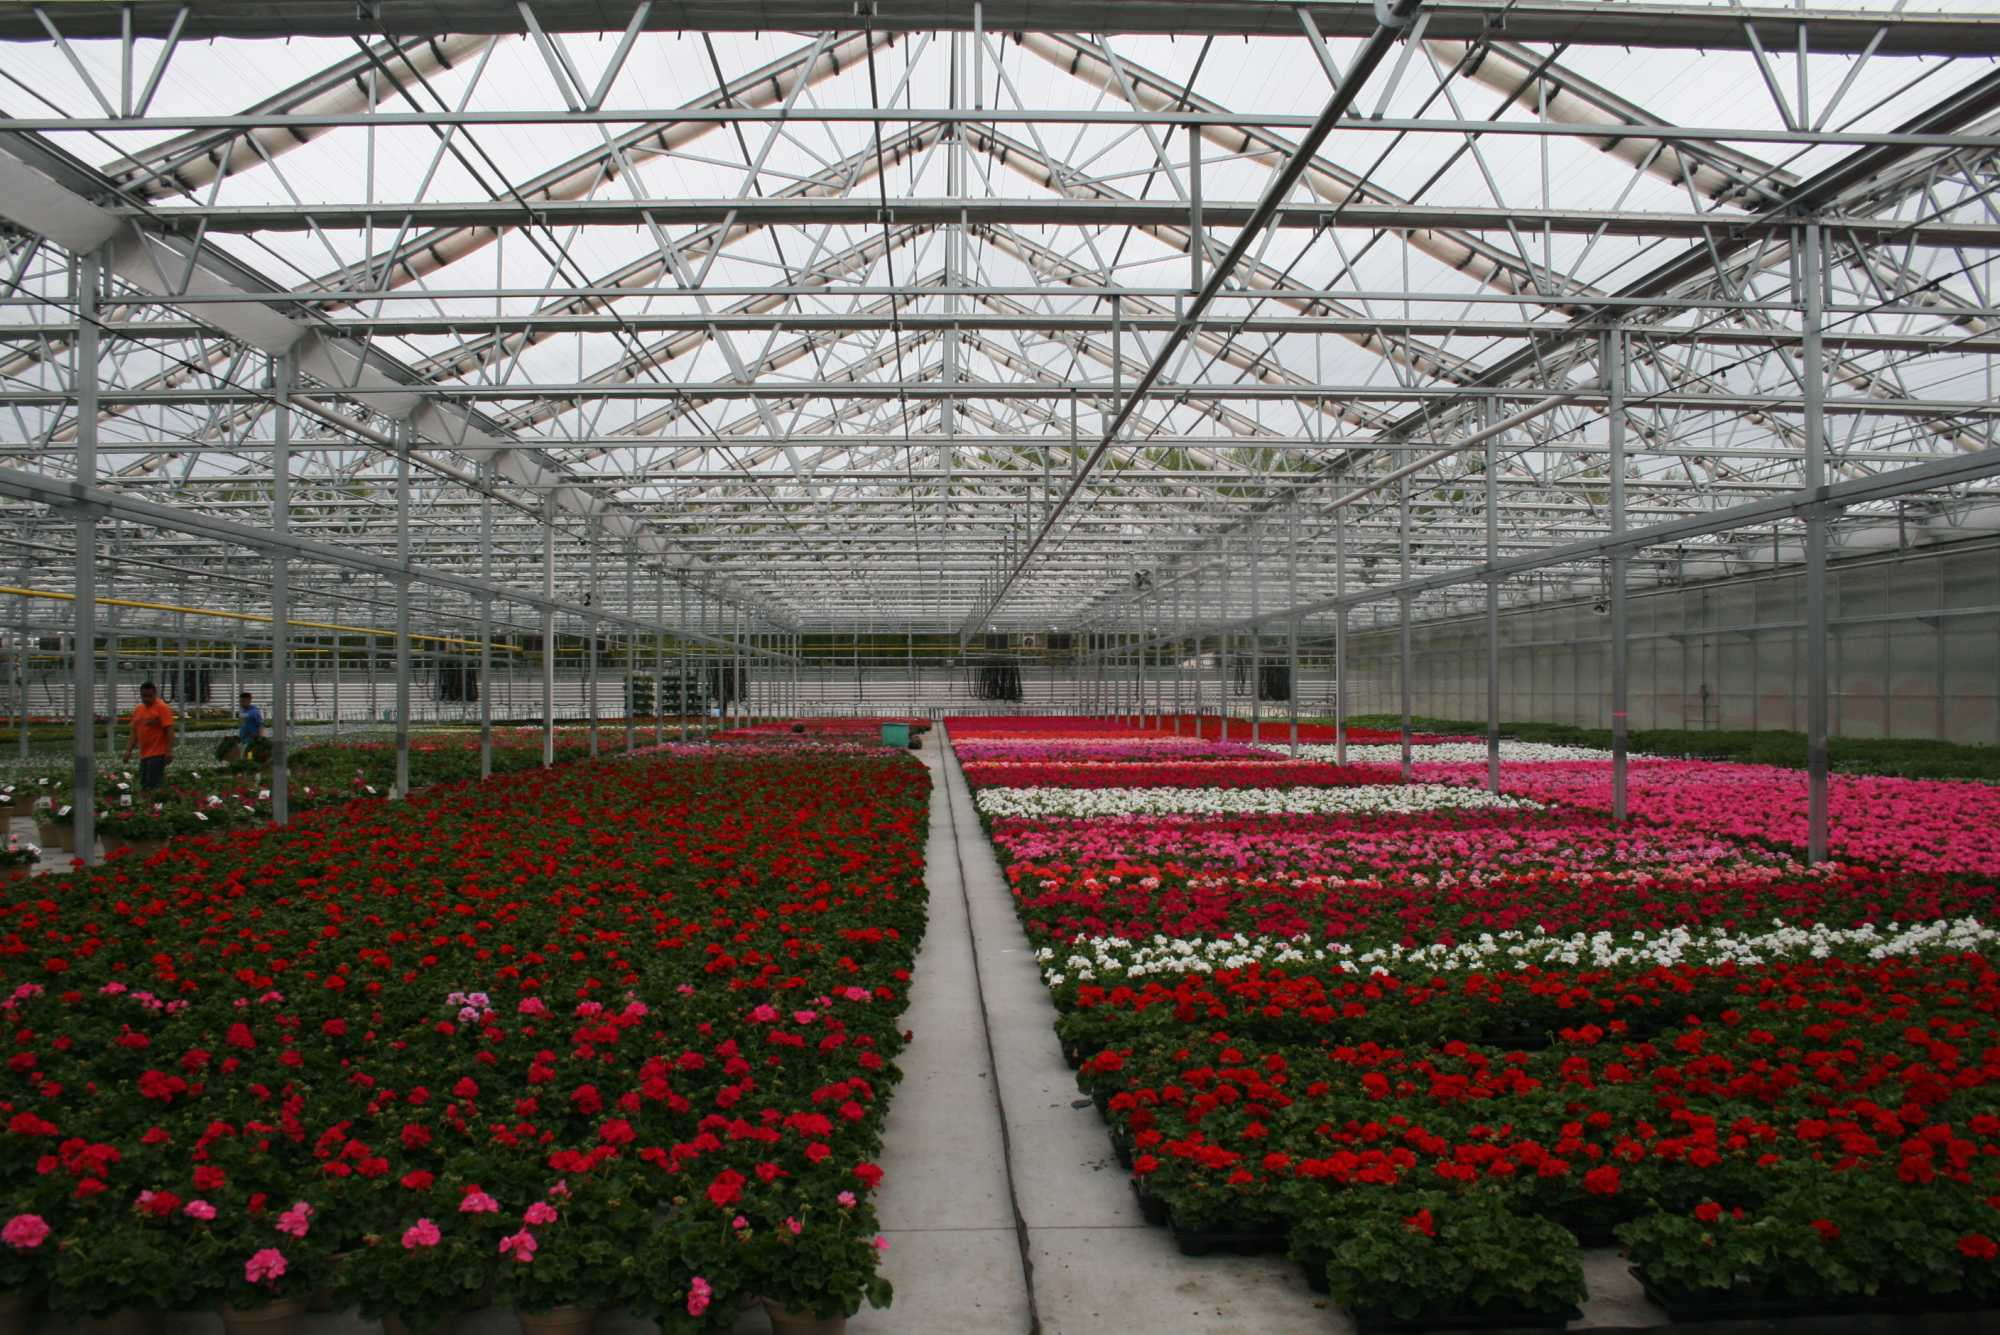 Lucas Greenhouses - Growing Spring AnnualsLucas Greenhouses